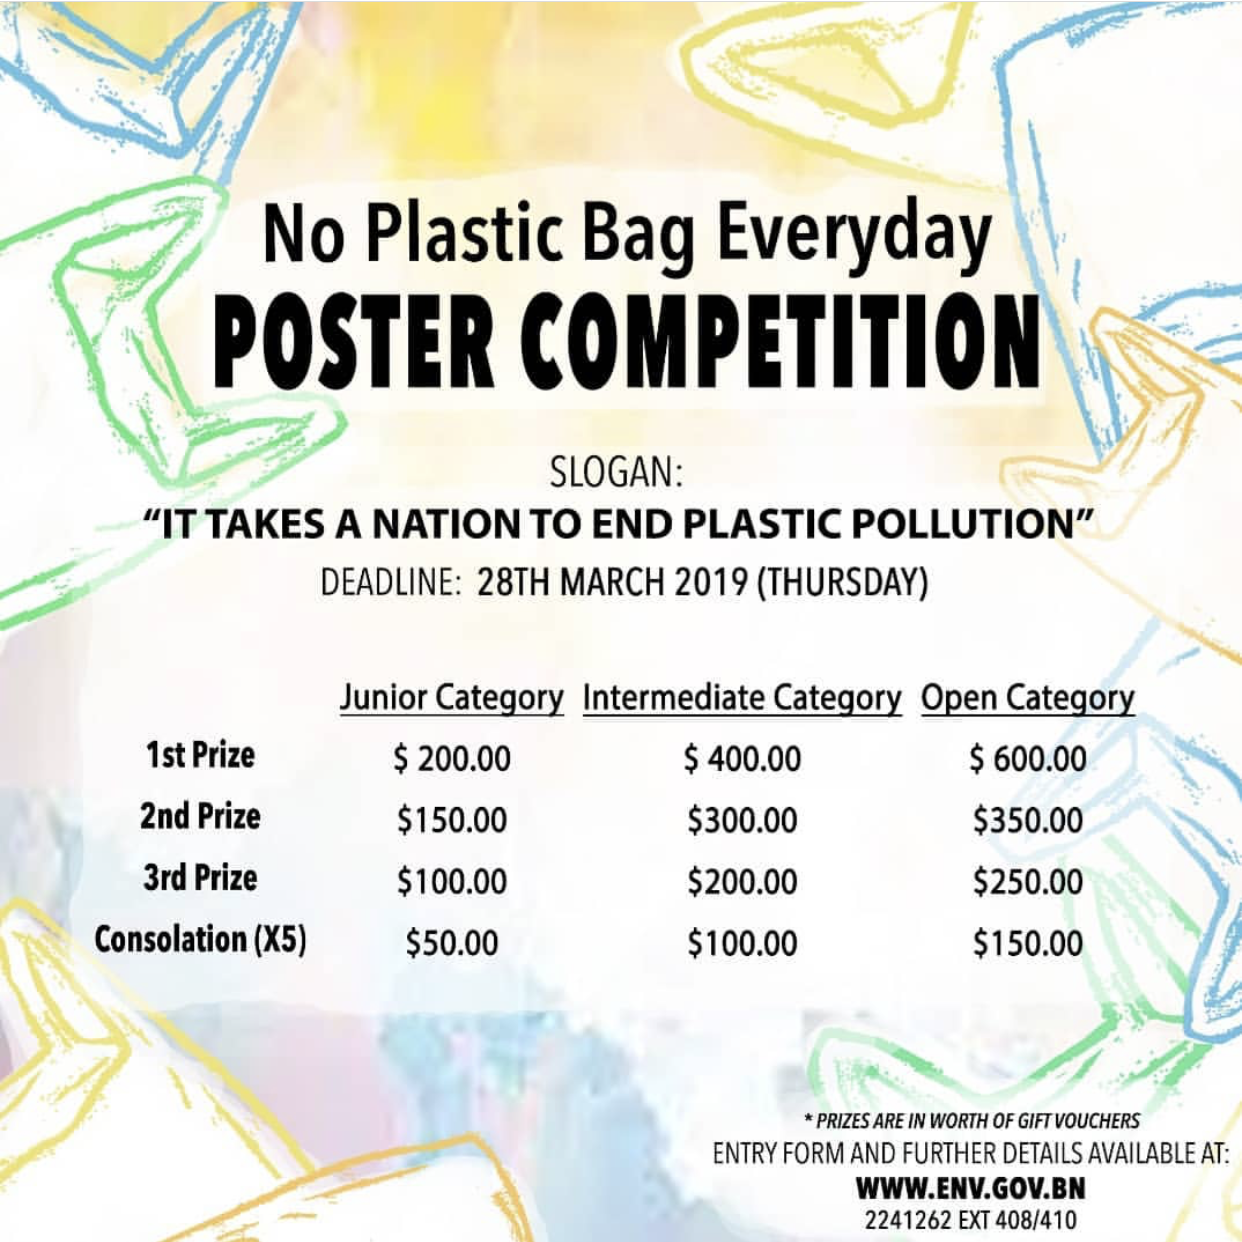 1_No Plastic Day Everyday Poster Competition.PNG